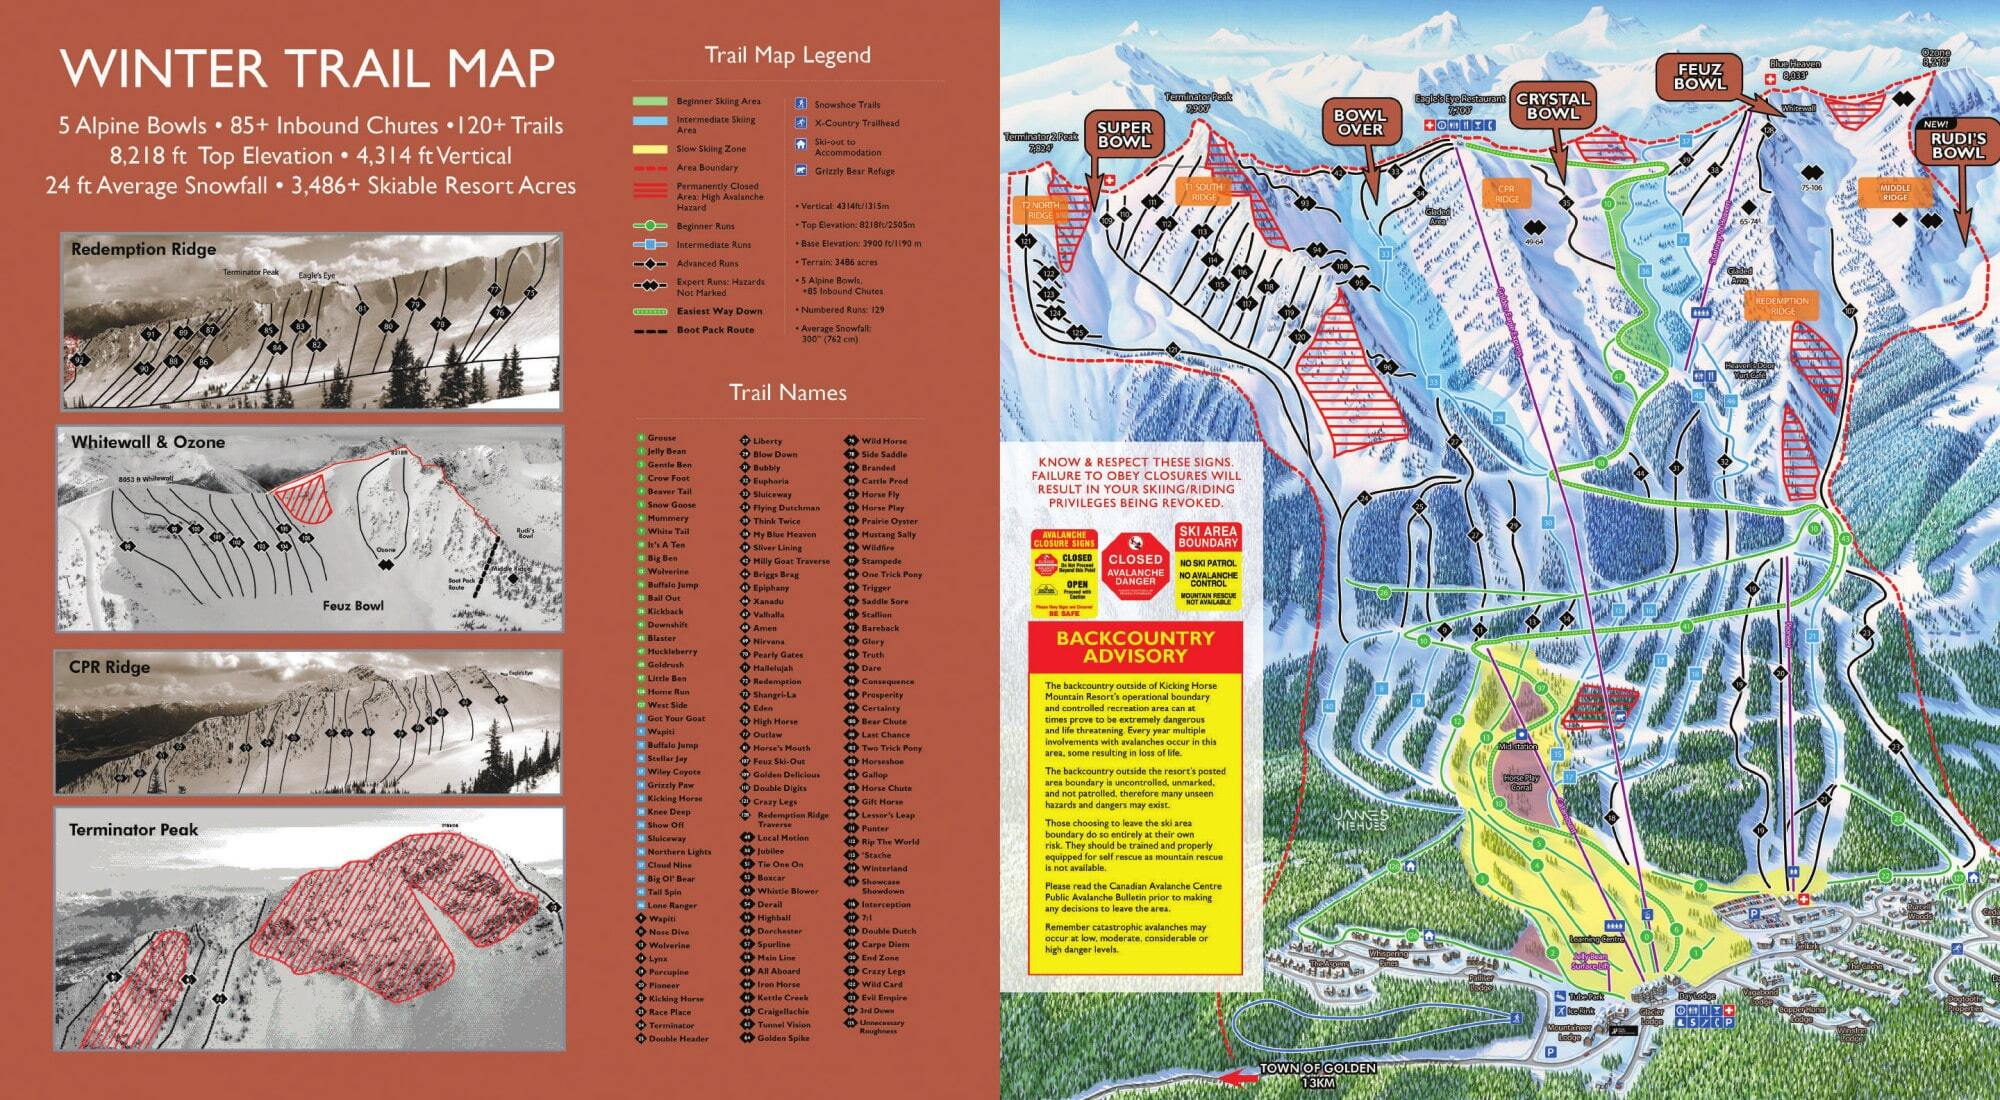 Kicking Horse Piste / Trail Map